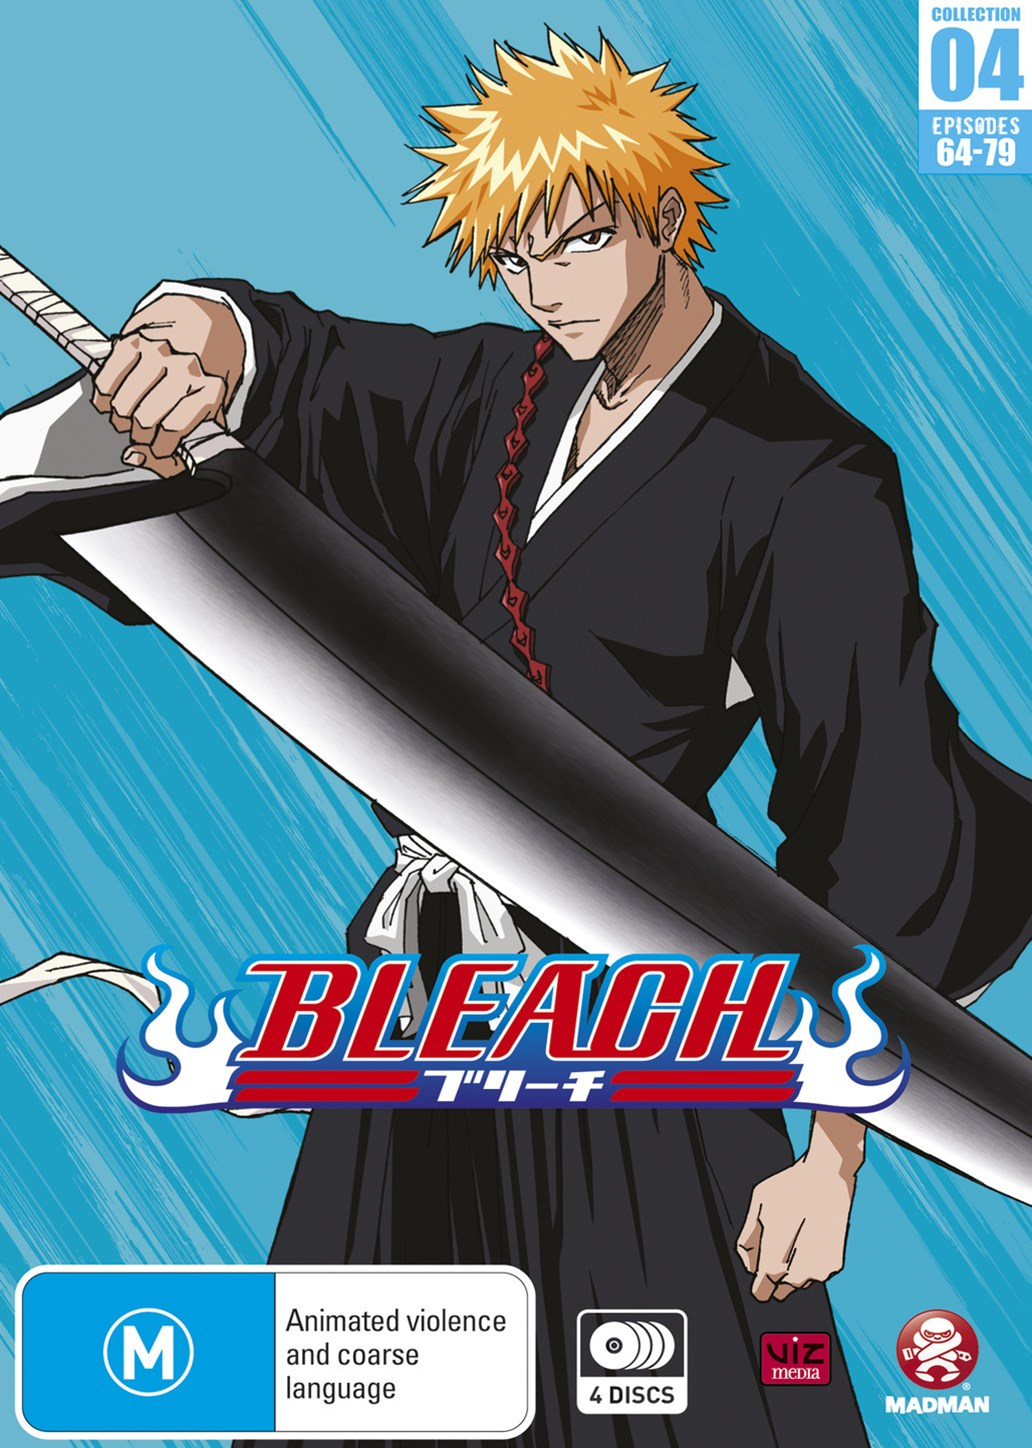 Bleach Collection 04 (Eps 64-79) (Season 4 Part 1)